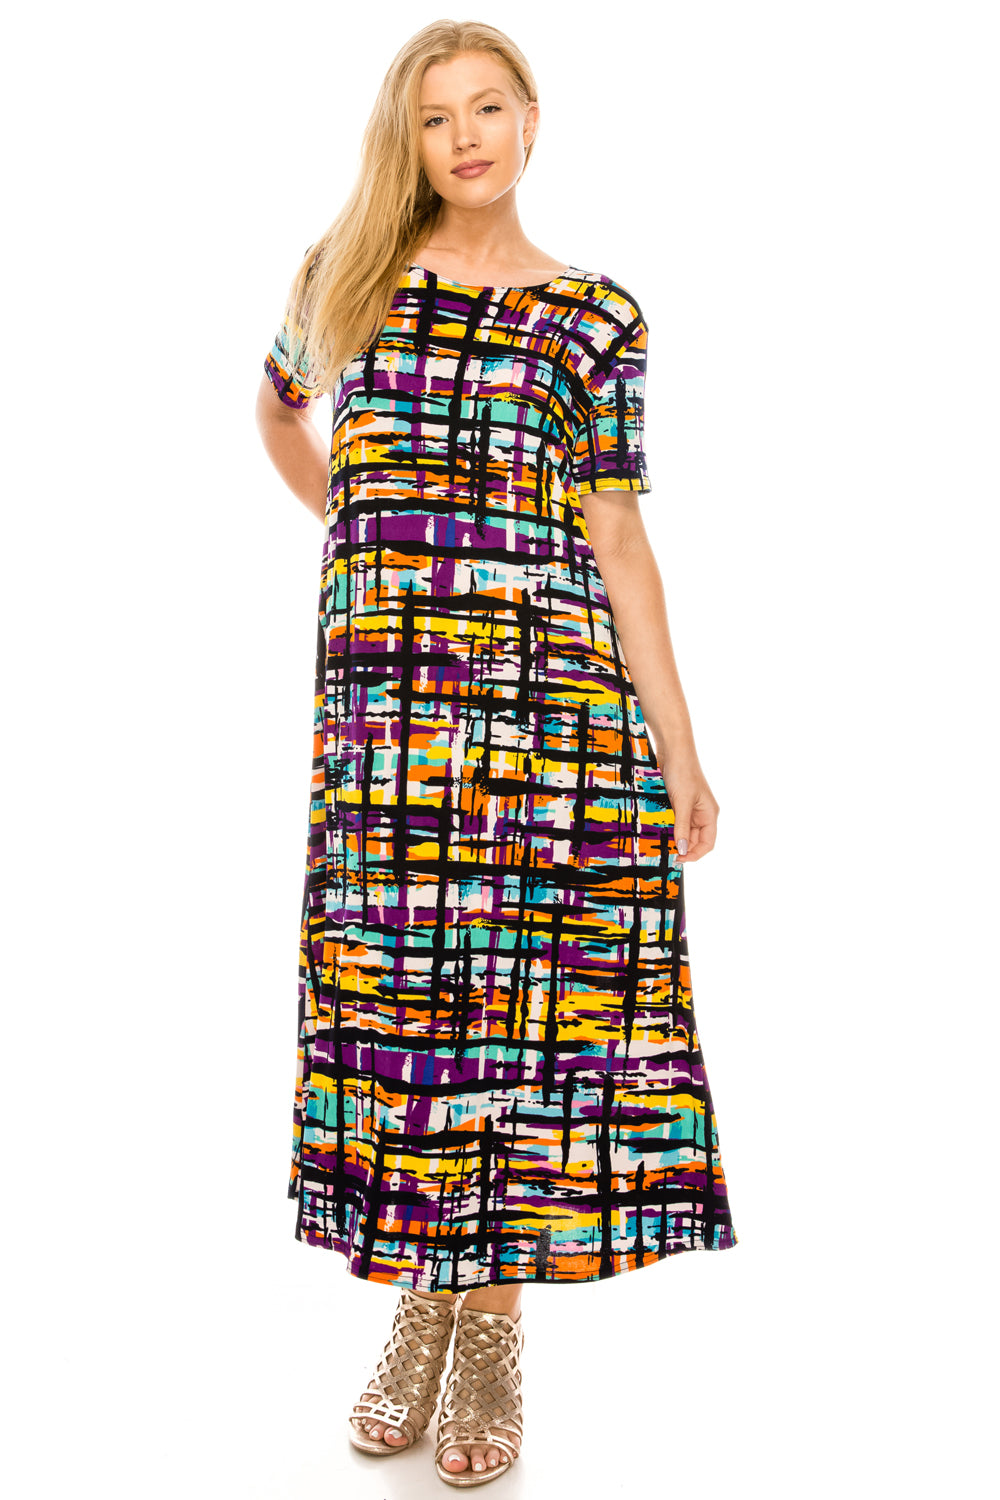 Jostar Women's Stretchy Long Dress Short Sleeve Print, 702BN-SP-W198 - Jostar Online